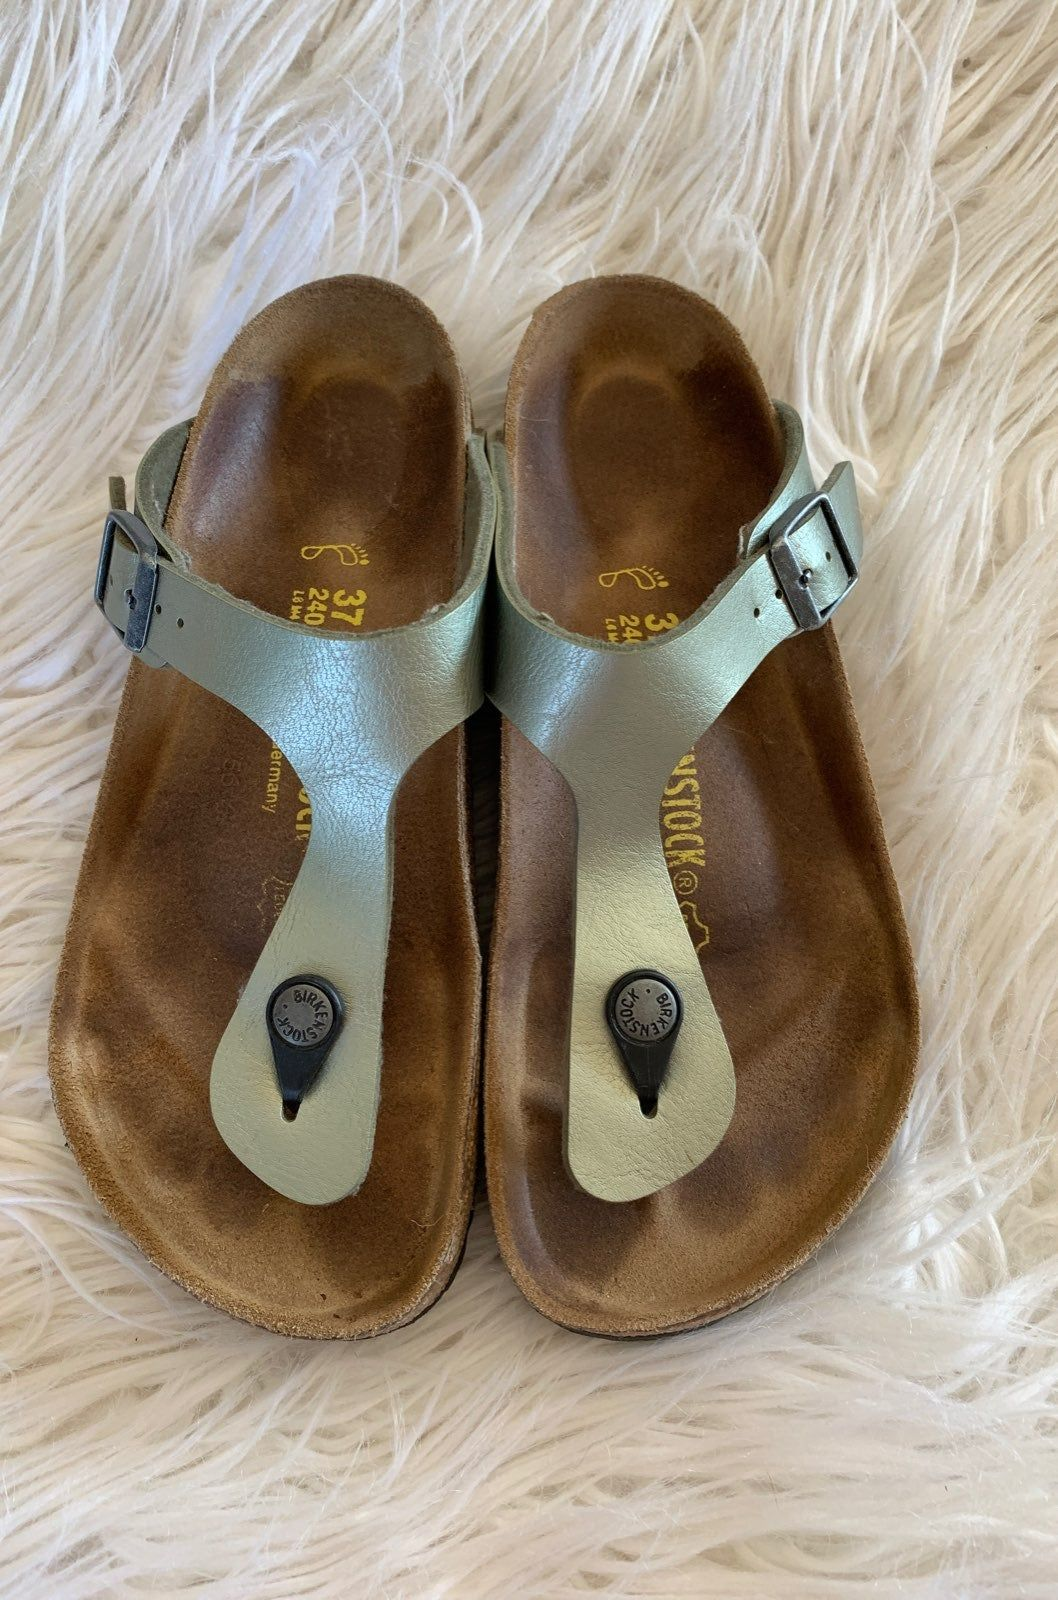 a4ae94d69dc8250015721cab37d9e97c - How Do I Know What Size Birkenstocks To Get